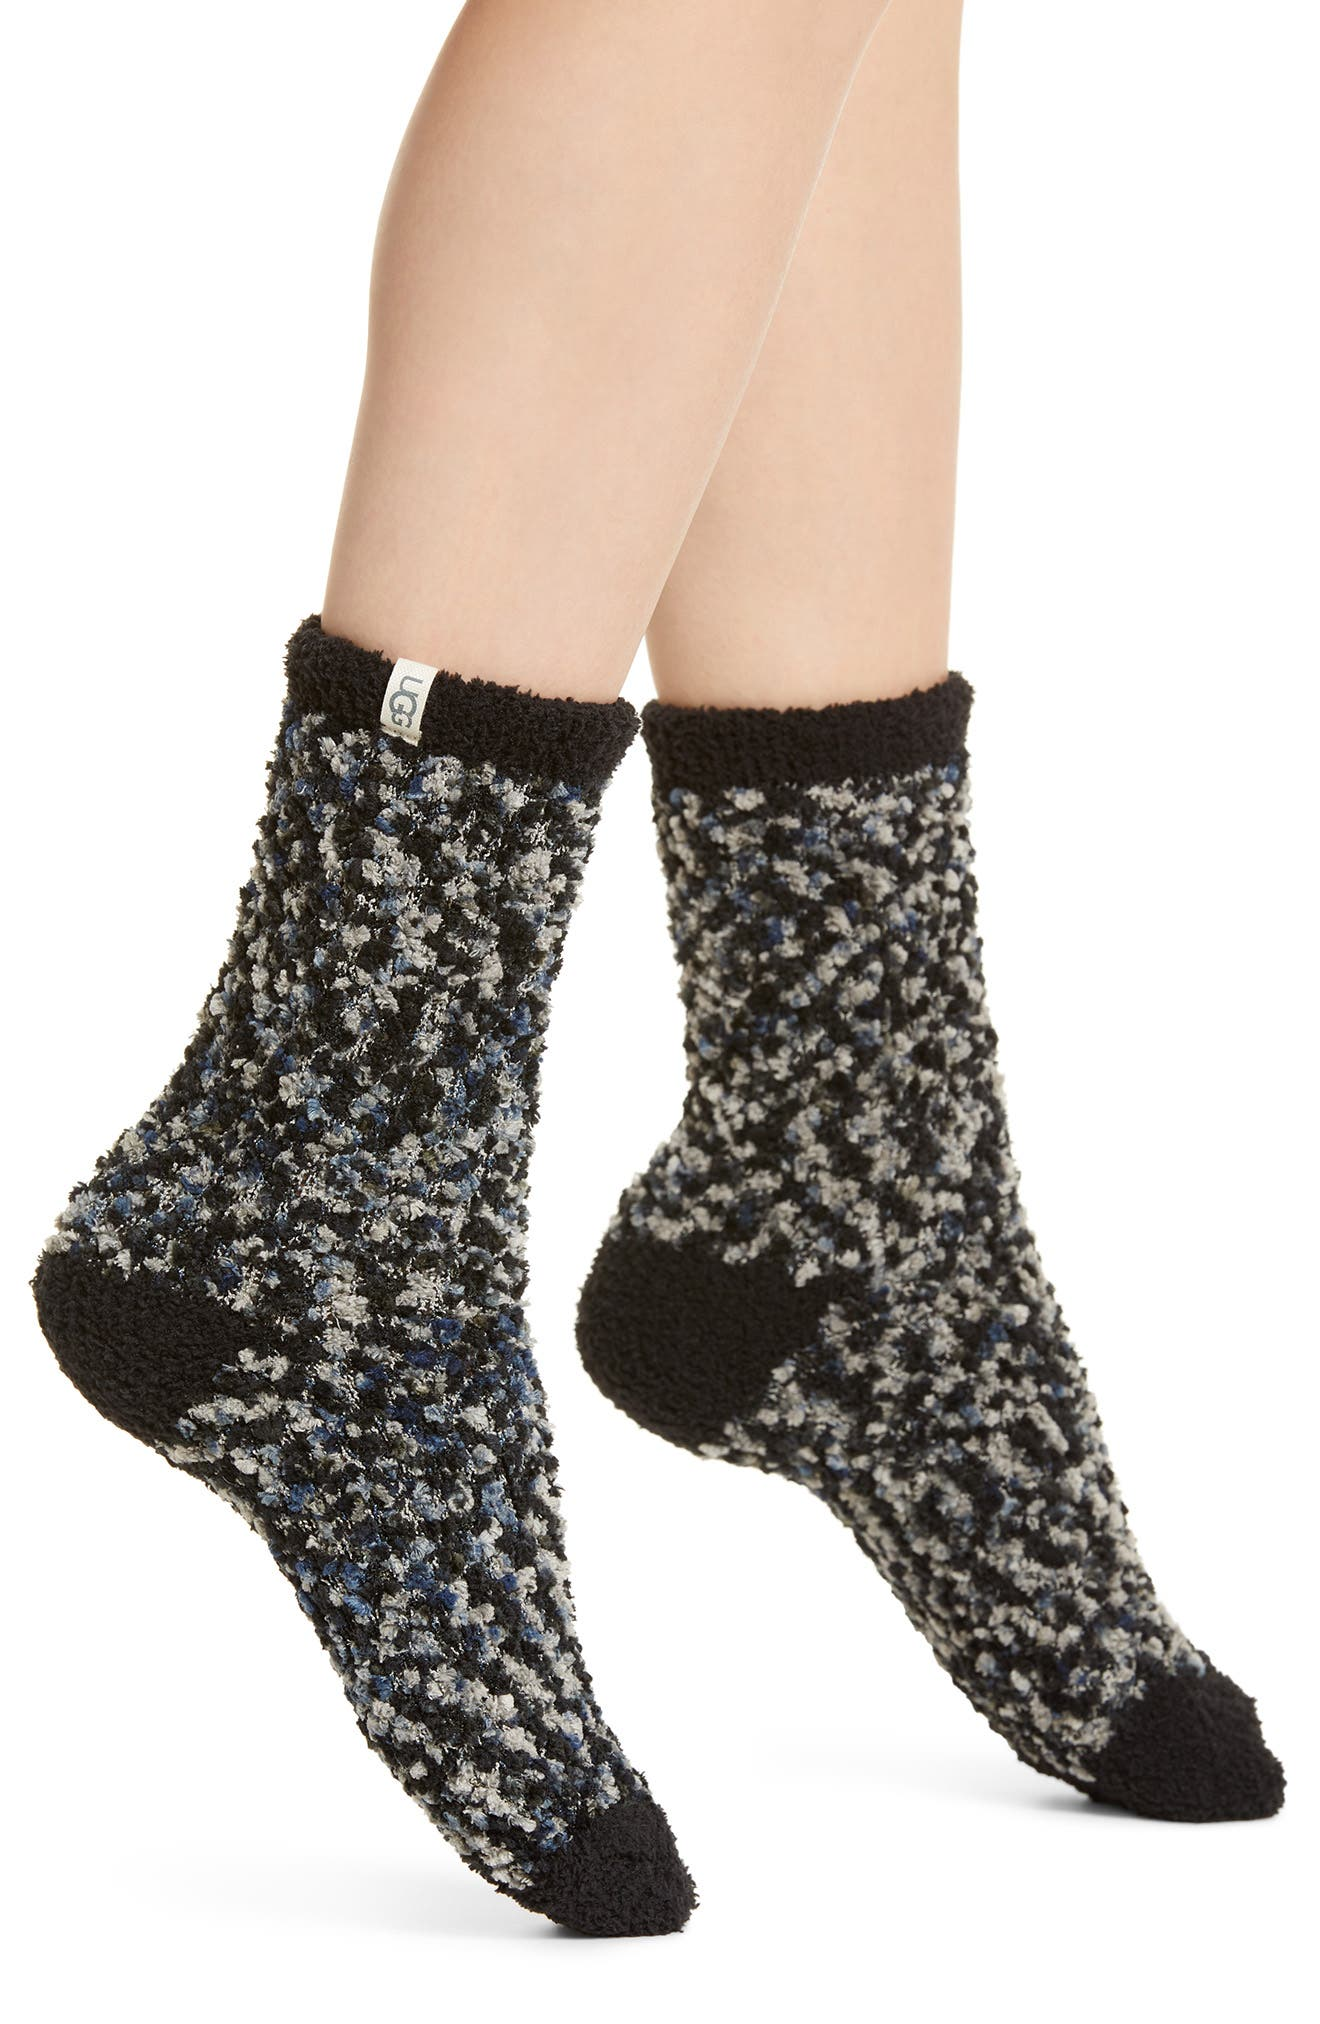 Fuzzy chenille yarn brings texture and coziness to these comfy crew socks perfect for lounging in or layering under boots. Style Name: UGG Australia Chenille Crew Socks. Style Number: 1185323. Available in stores.